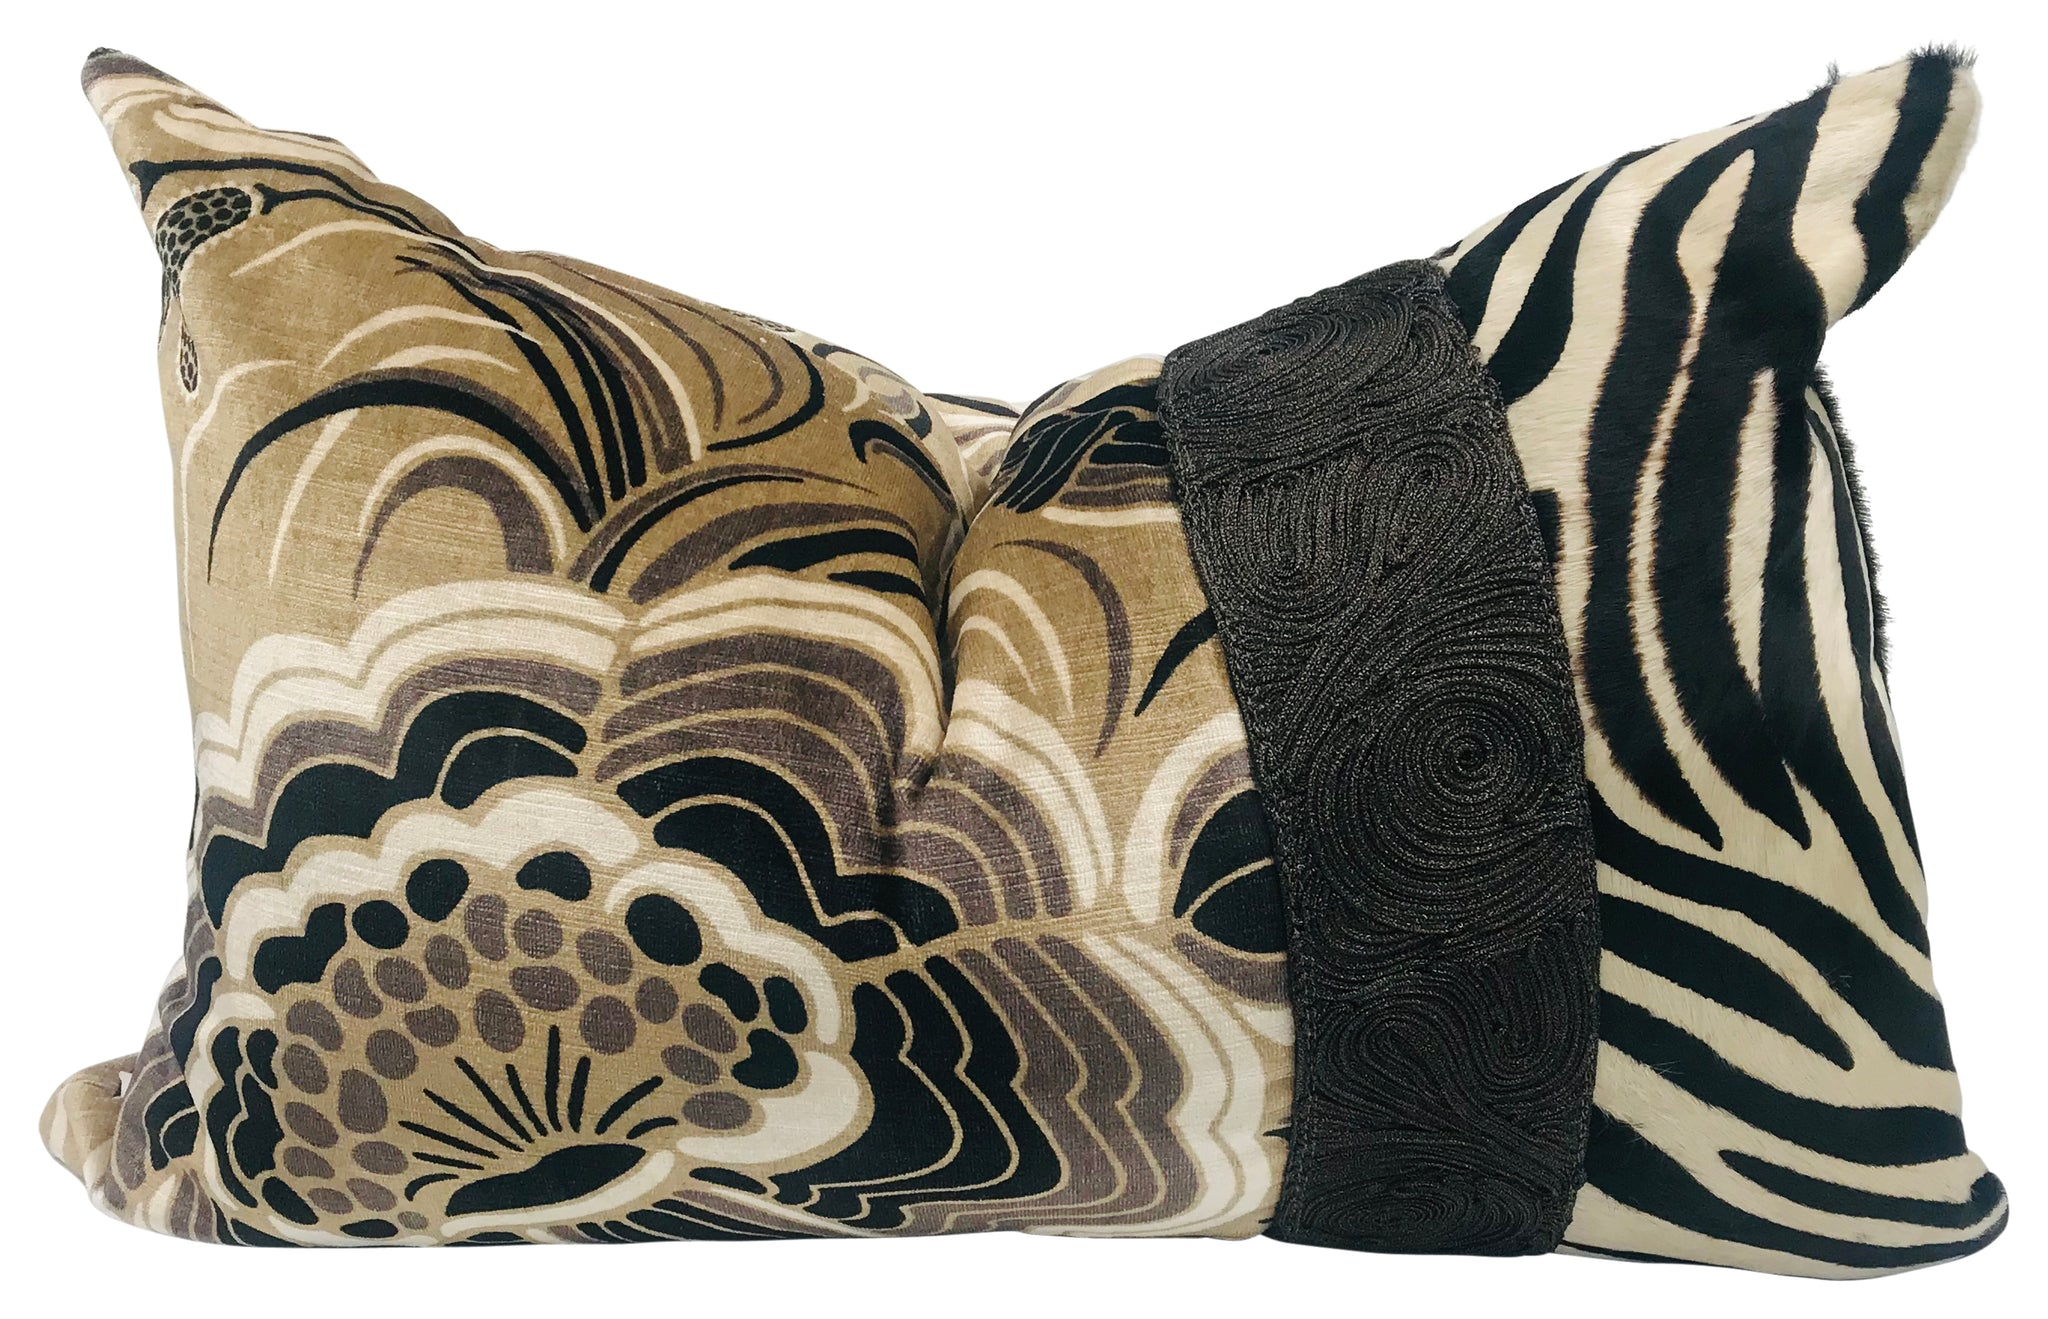 Stone & Black Sprig Floral Zebra Hair Pillow